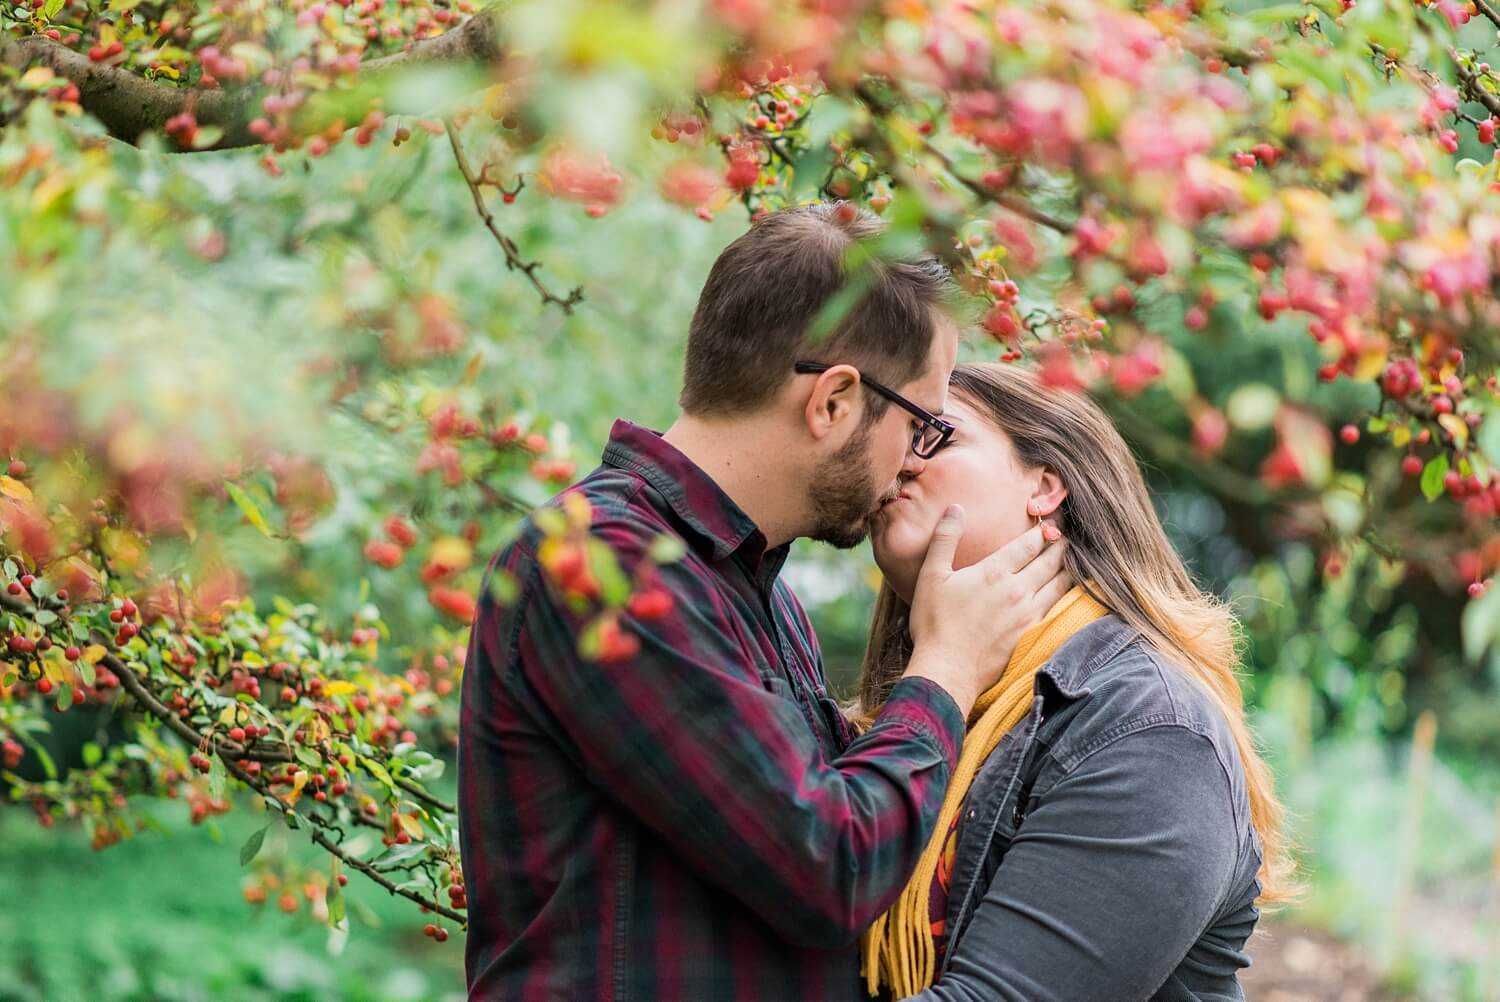 portland-engagement-photography-mcmenamins-edgefield-shelley-marie-photo-010_cr.jpg